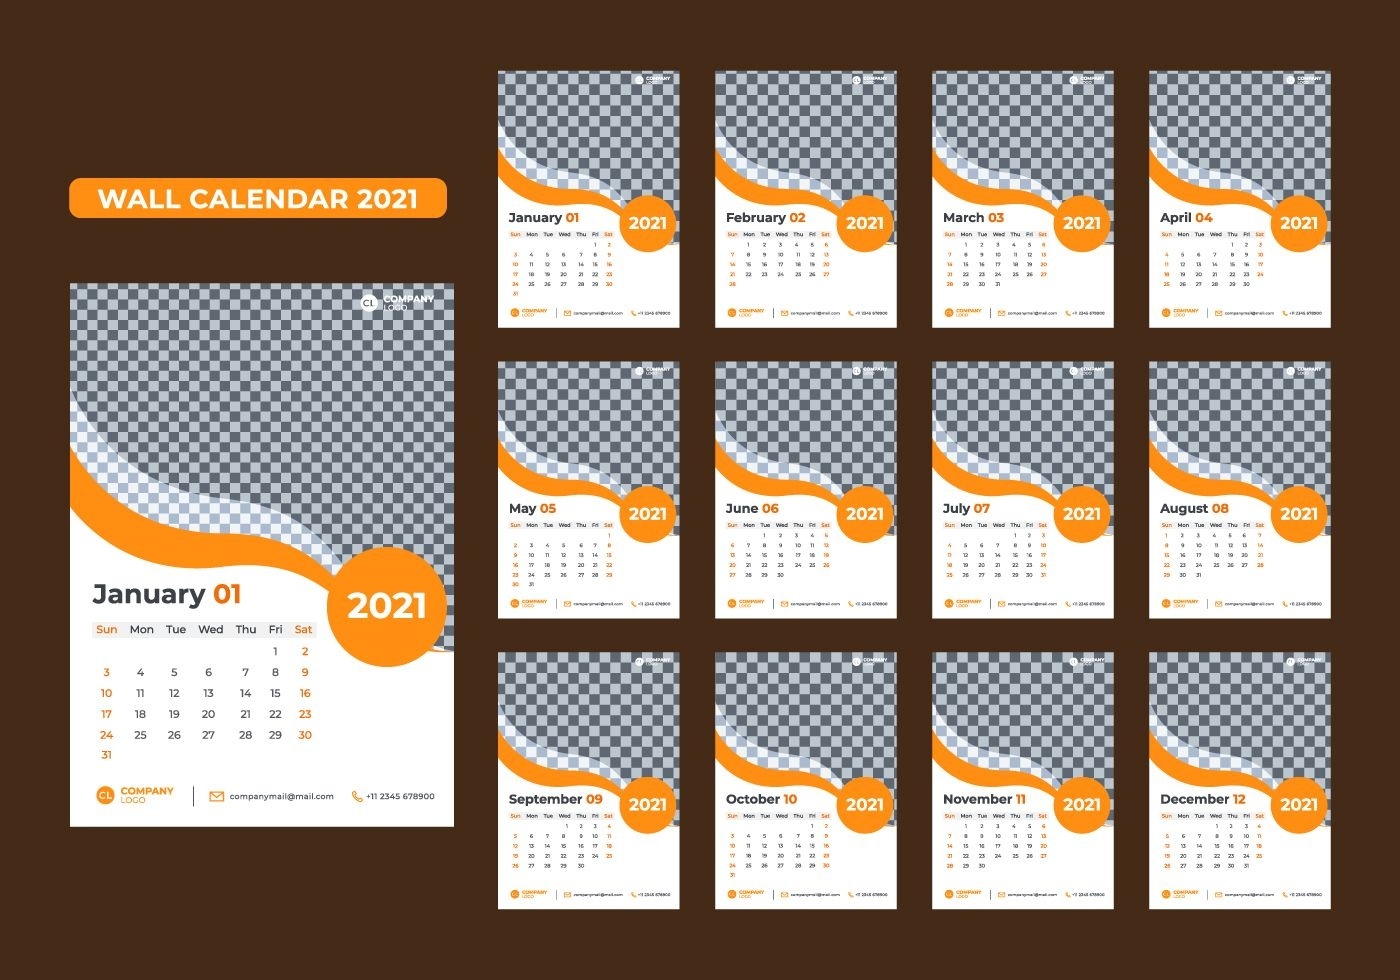 Set Of 12 Month 2021 Wall Calendar Templates - Download Free